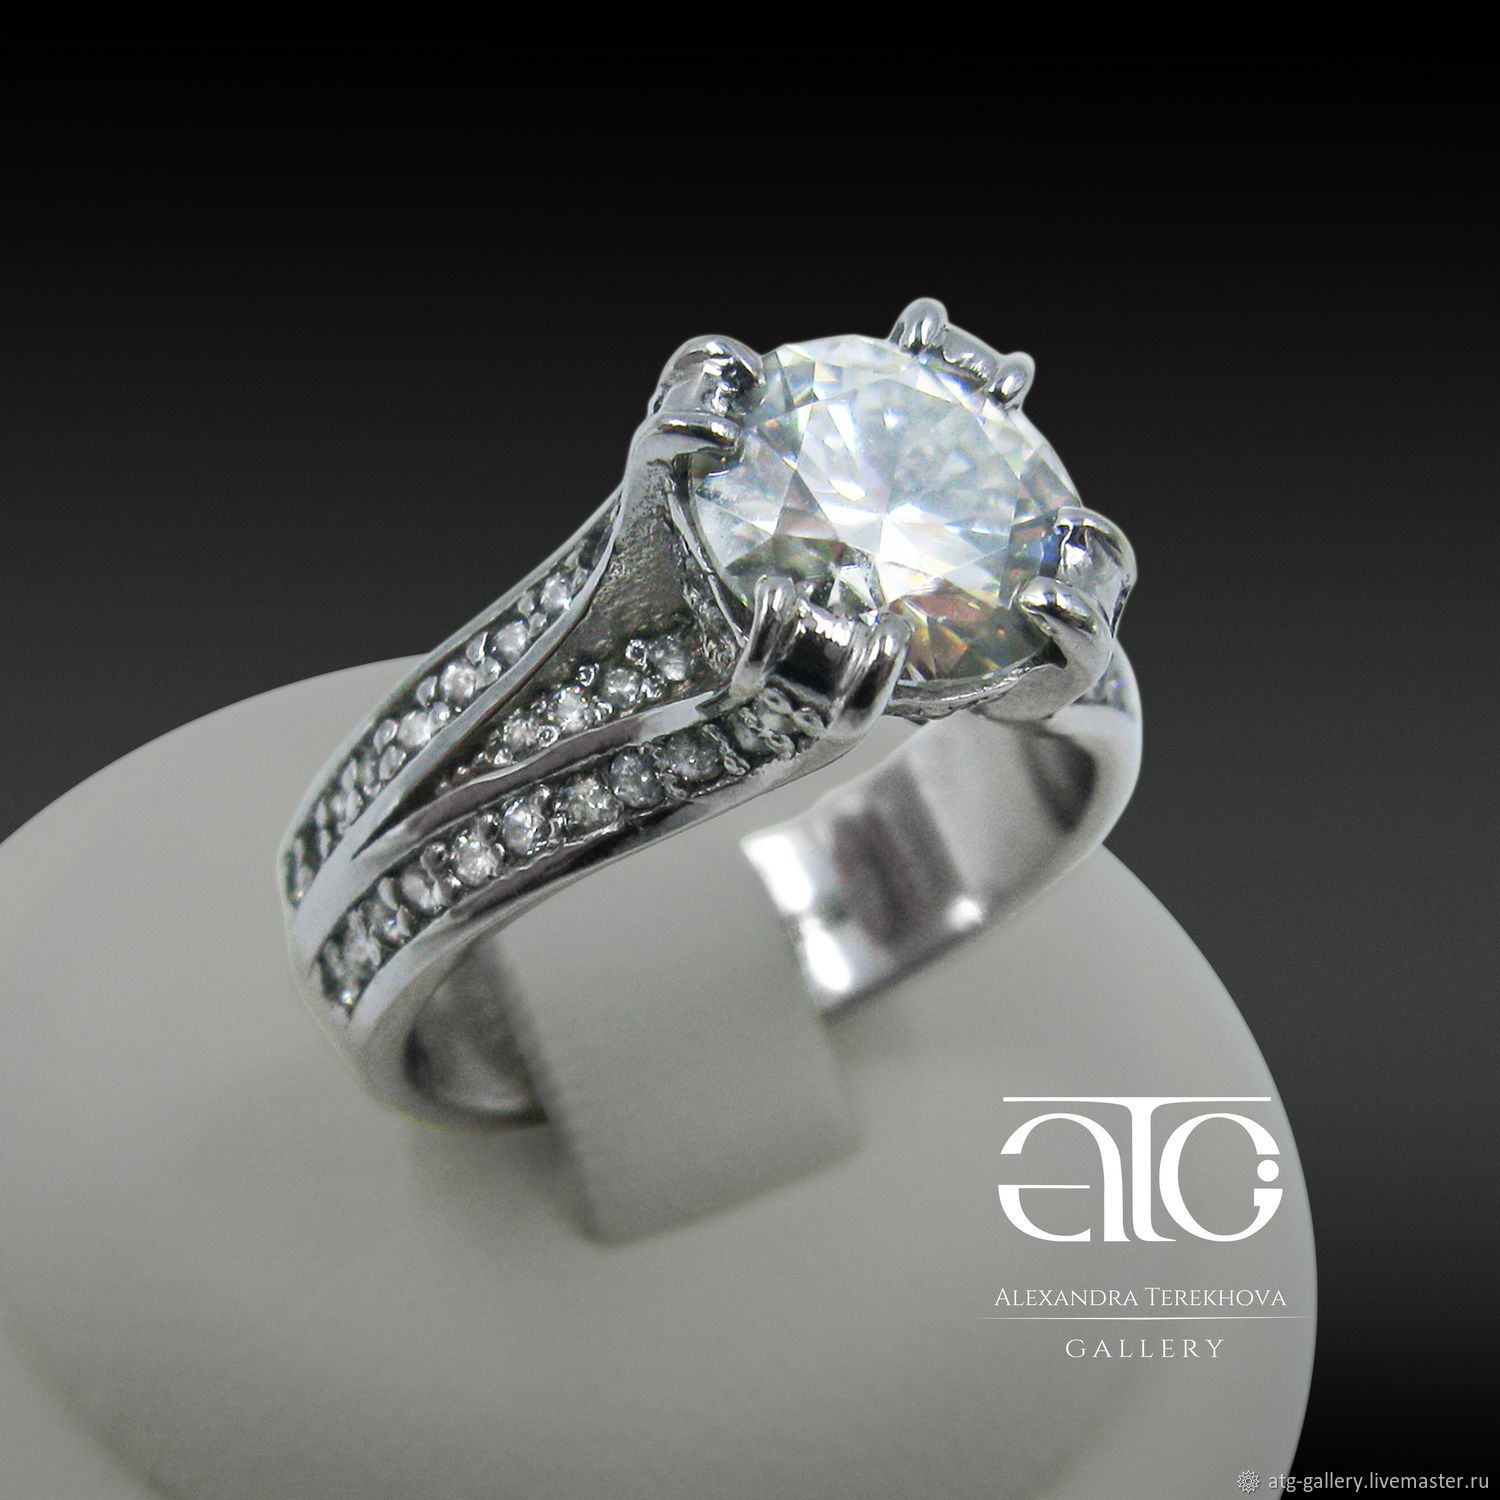 Made to order in any performance. Very elegant, very beautiful ring!